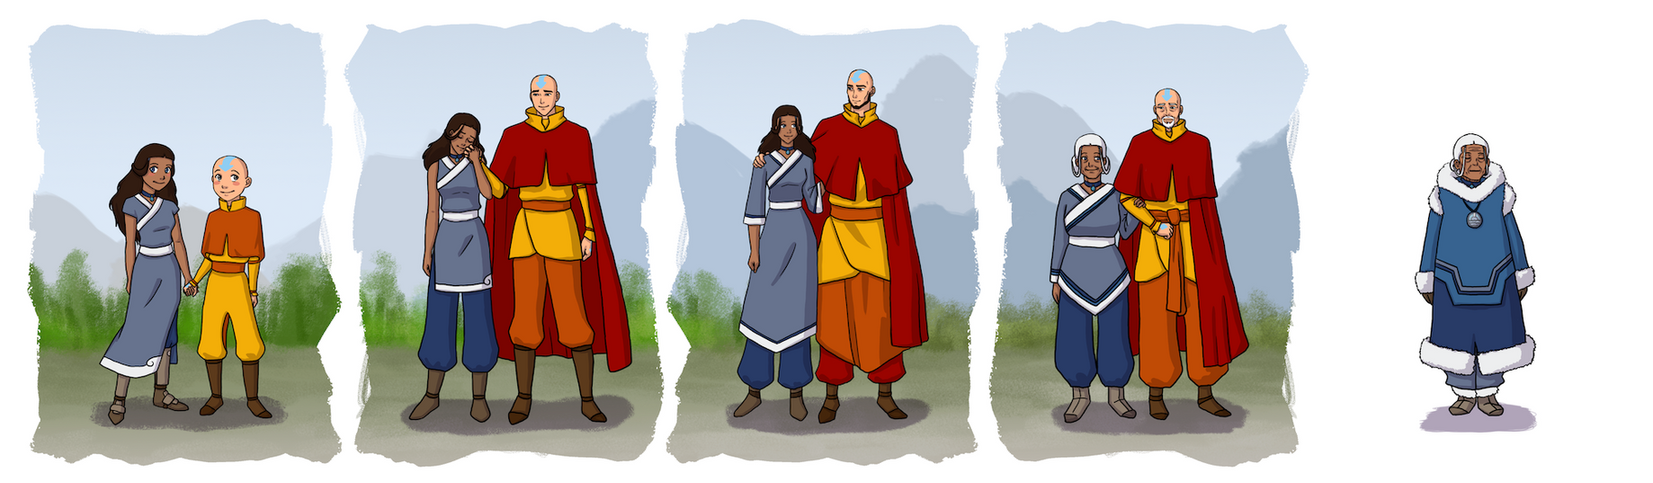 Aang and Katara by bechedor79